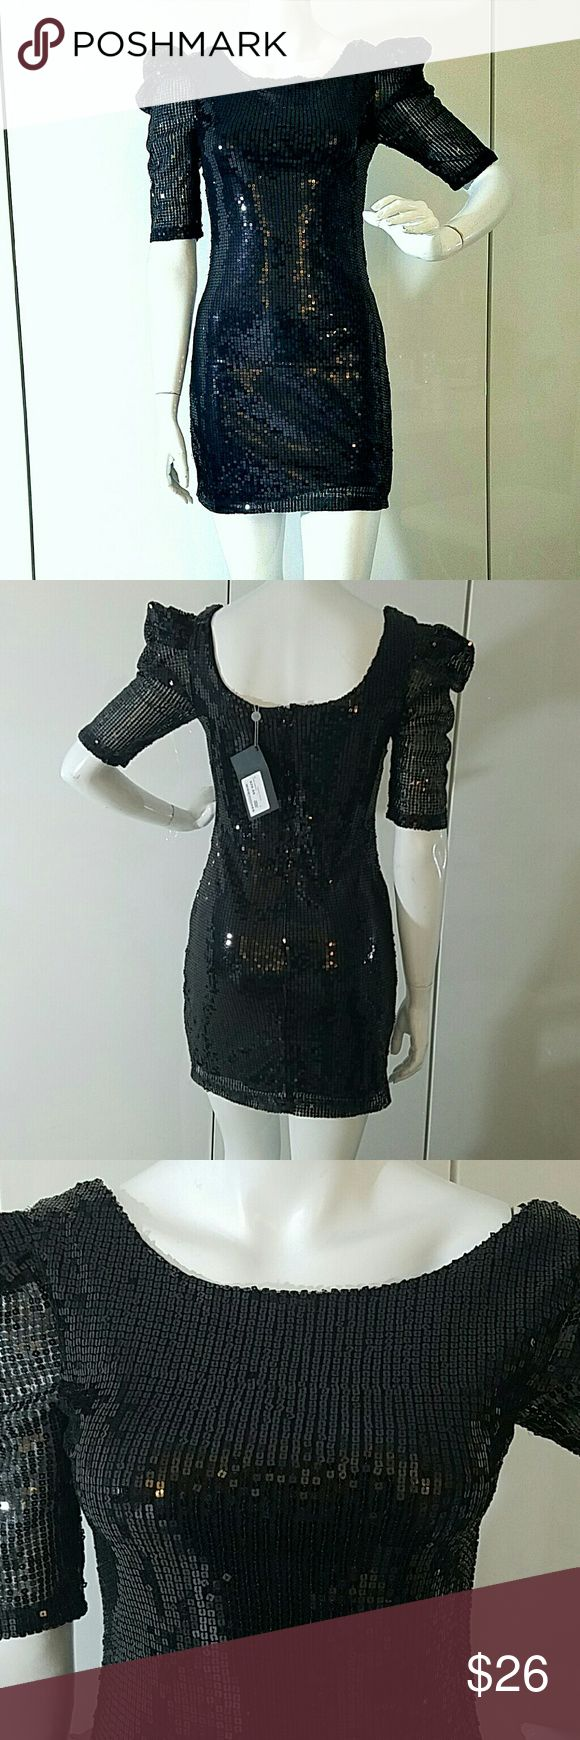 NWT Urban behavior black sequin puff sleeve dress NWT Urban Behavior sequin puff sleeve dress Size small Beautiful all over square sequins Absolutely stunning Zip back  Elbow length sleeve  Lined bodice urban behavior  Dresses Mini